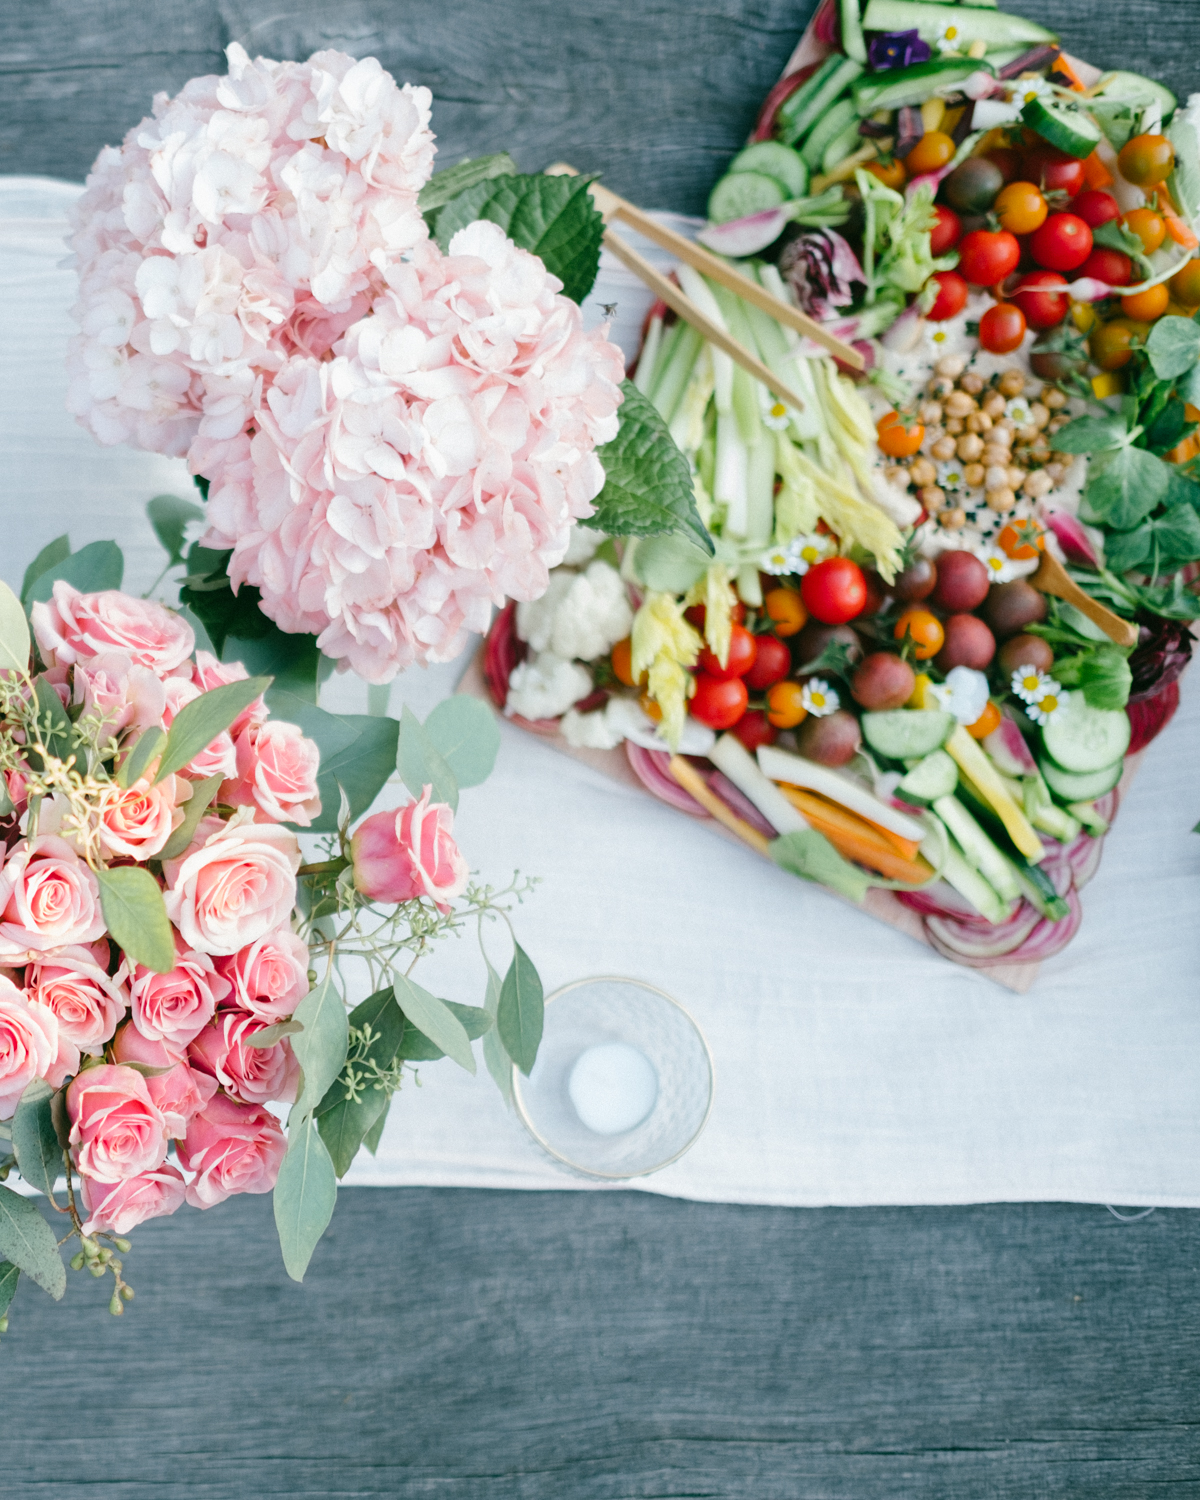 top view of flowers and food